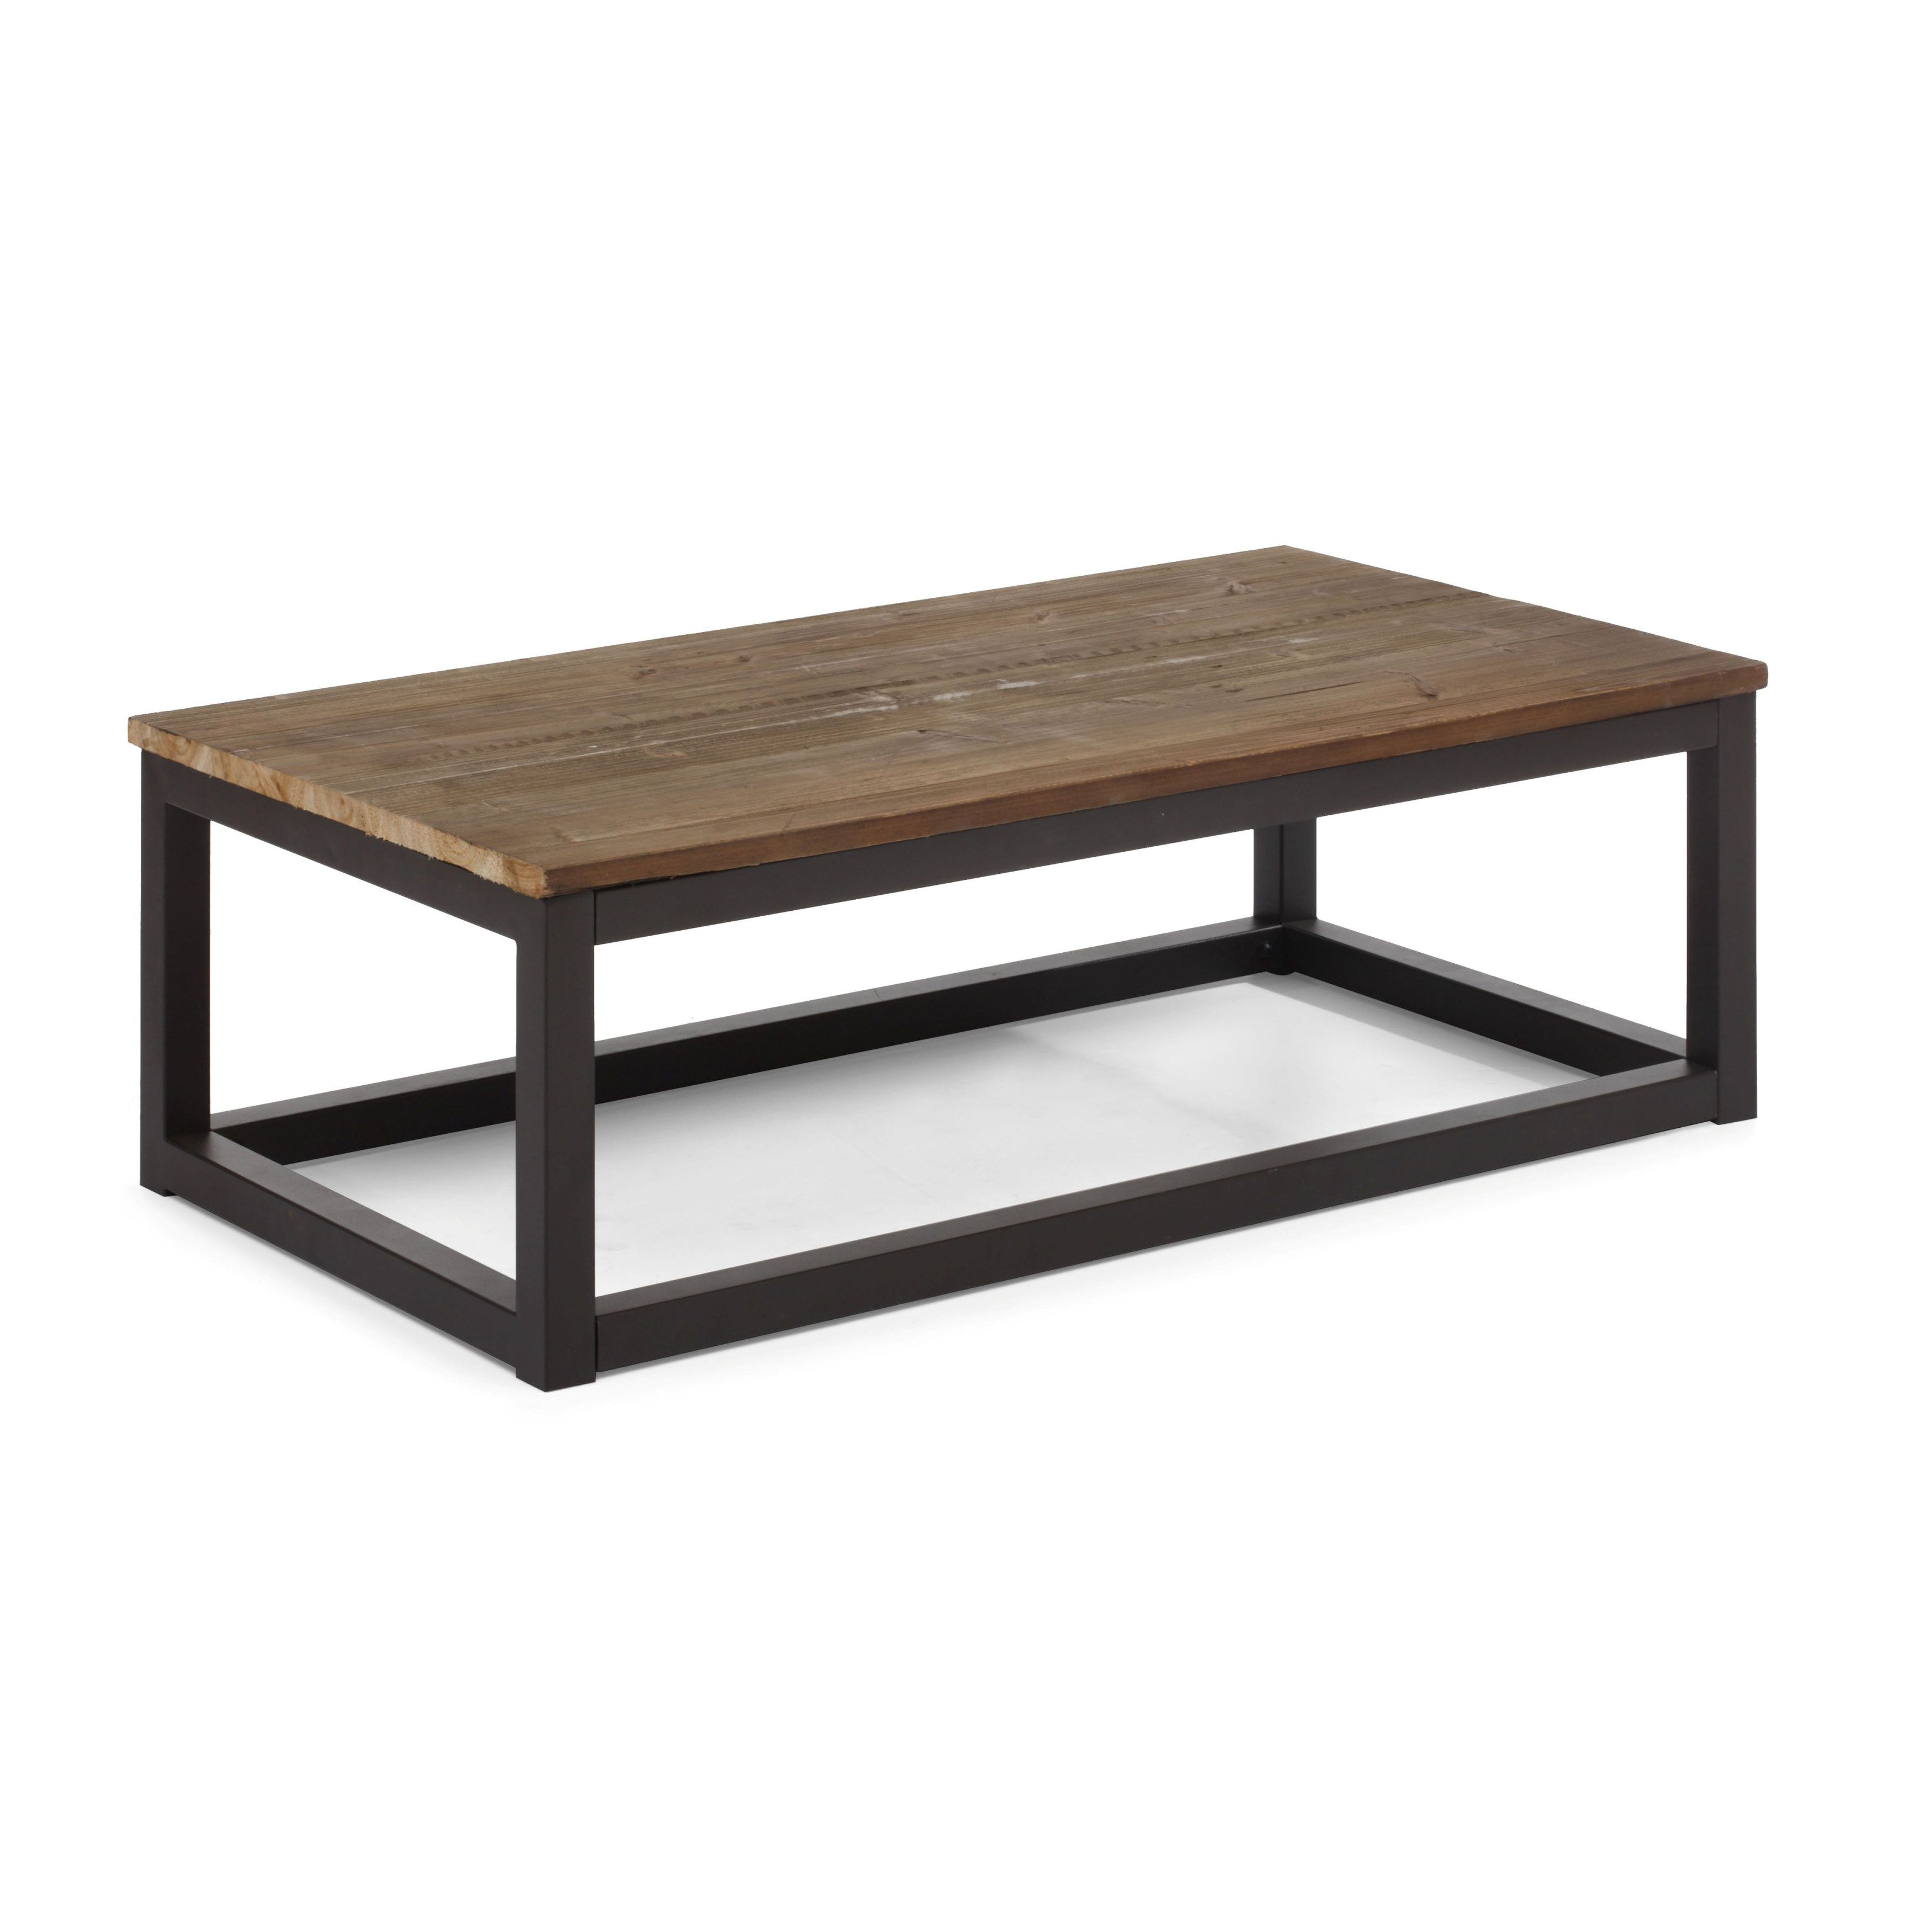 Civic center distressed natural long coffee table overstock civic center distressed natural long coffee table overstock shopping great deals on coffee geotapseo Image collections